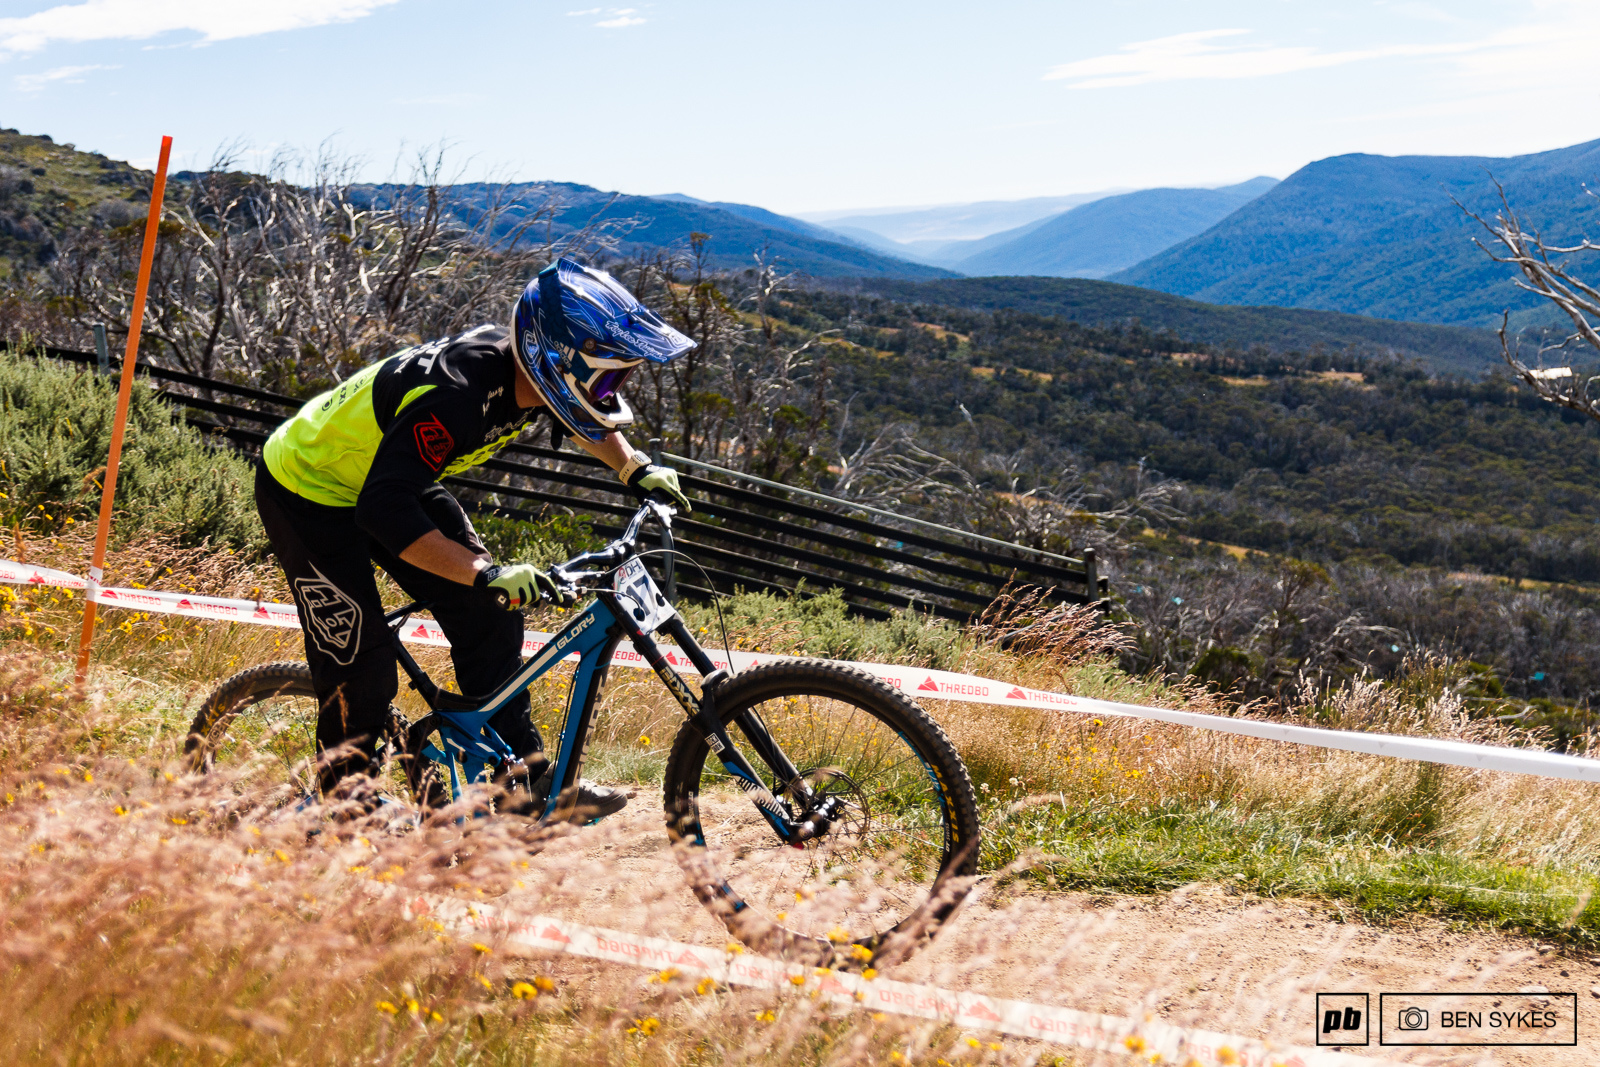 Riding across the top of Thredbo DH with the Thredbo valley in the background